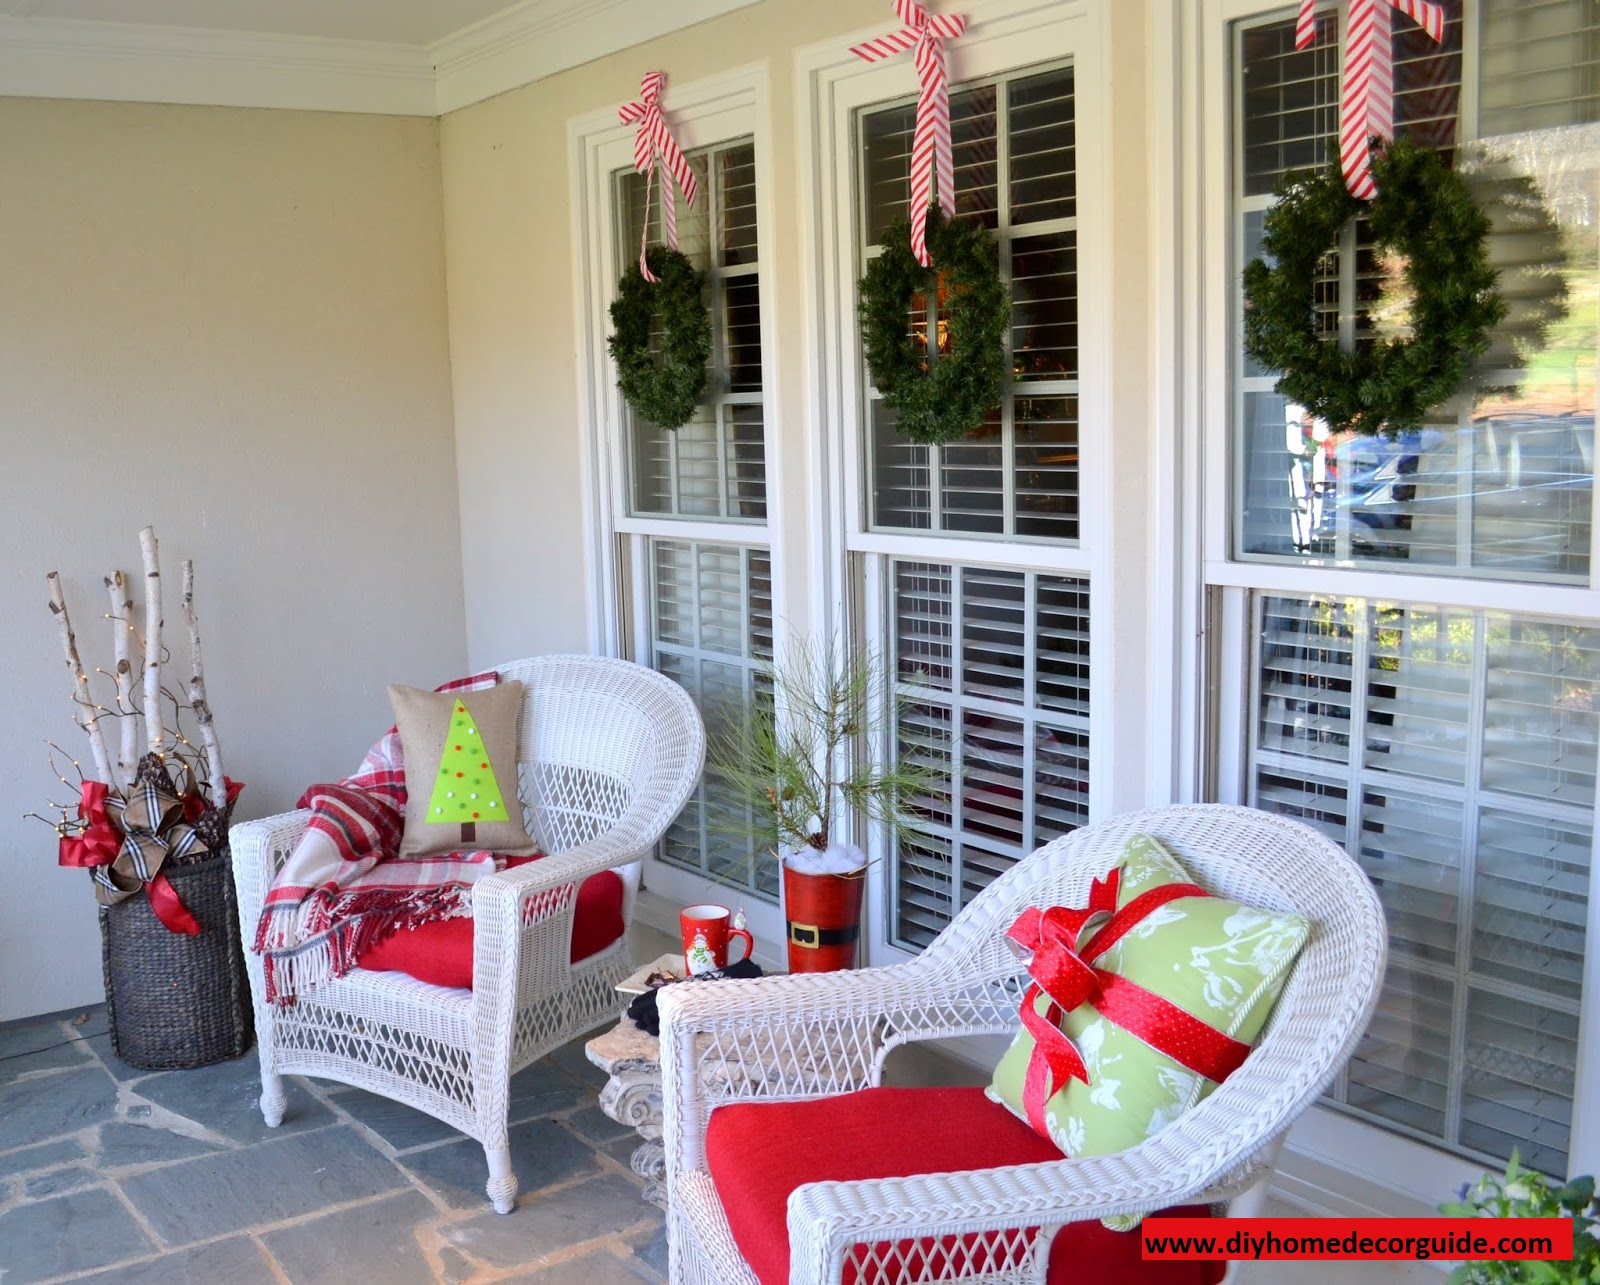 DIY Outdoor Christmas Decorations Ideas - Christmas decoration outdoor ideas